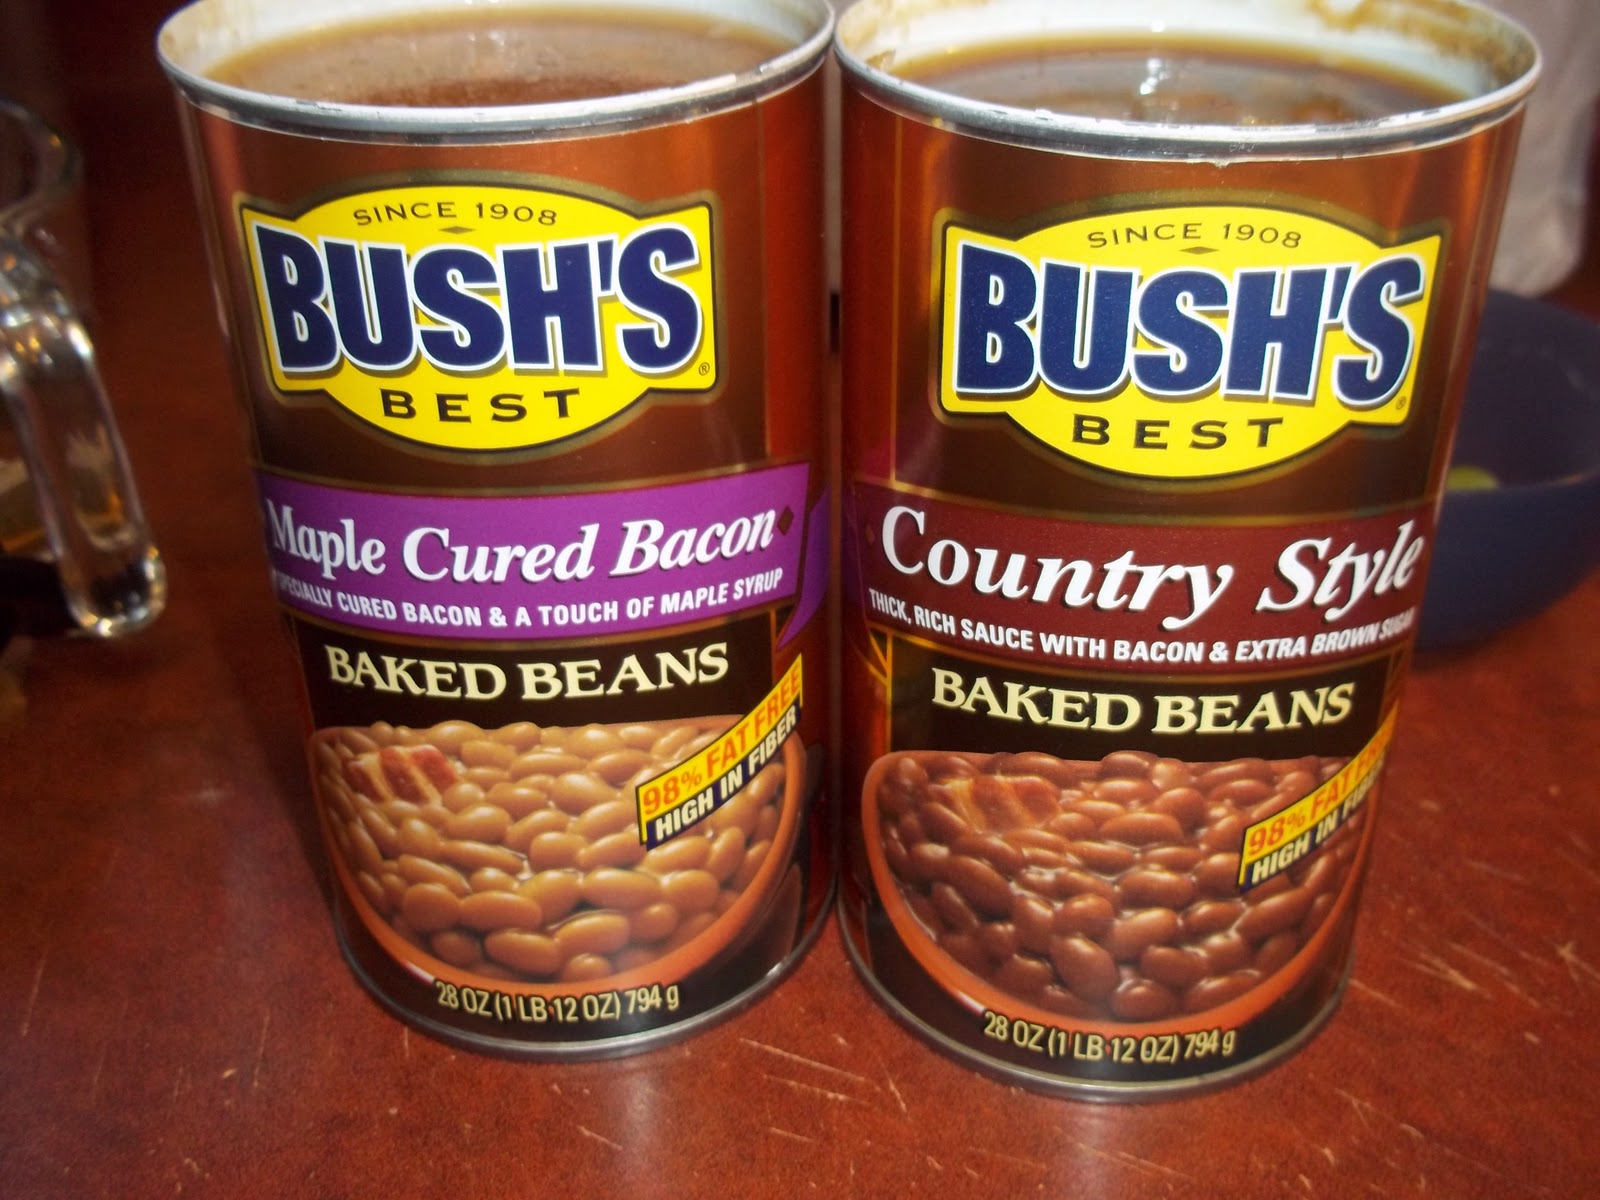 These are the bean flavors that I use.